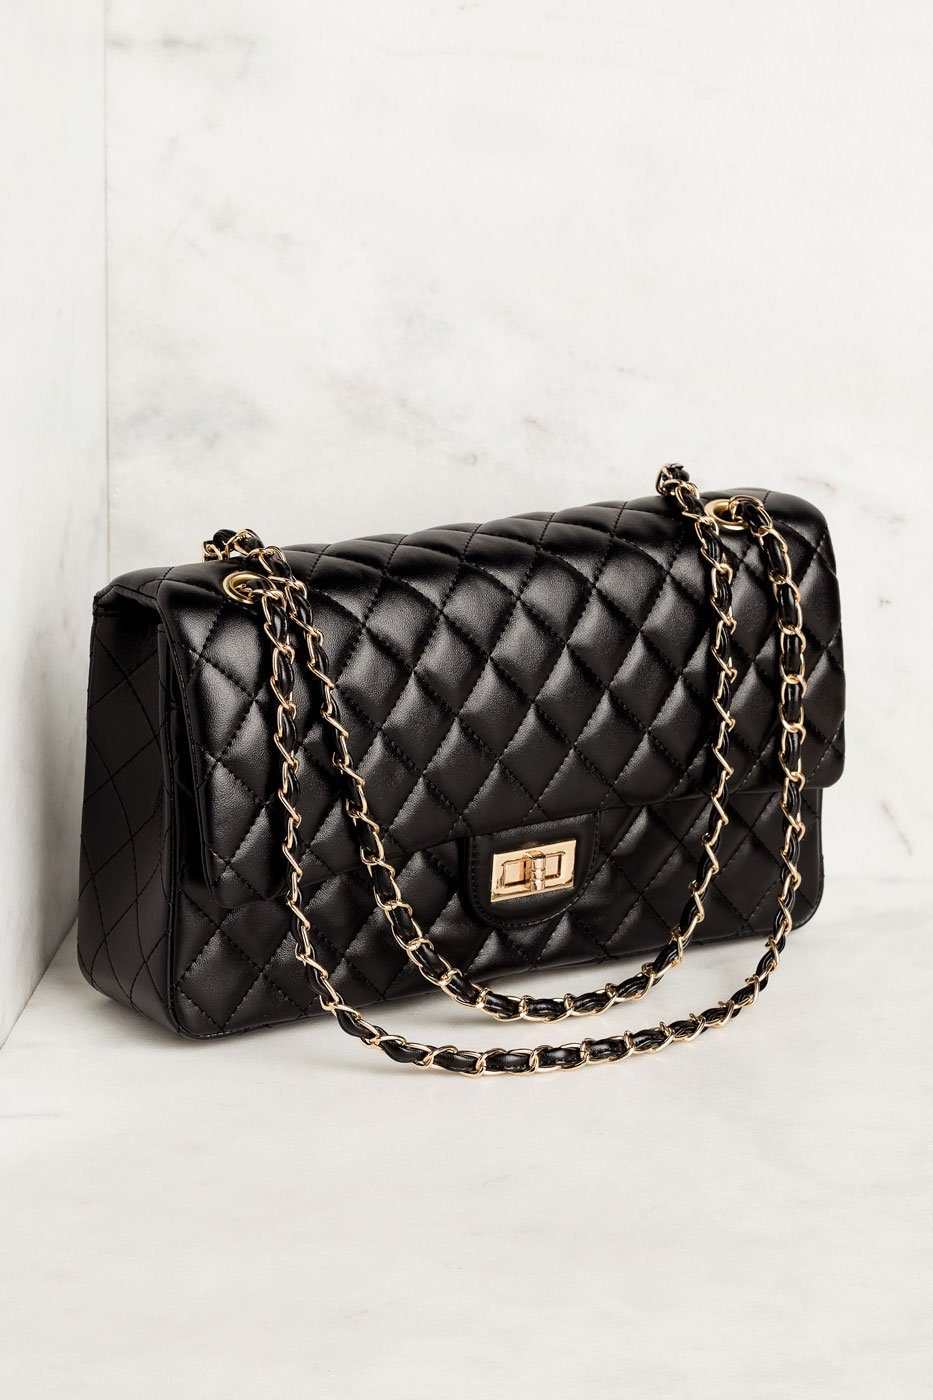 Black Quilted Handbag with Gold Accents